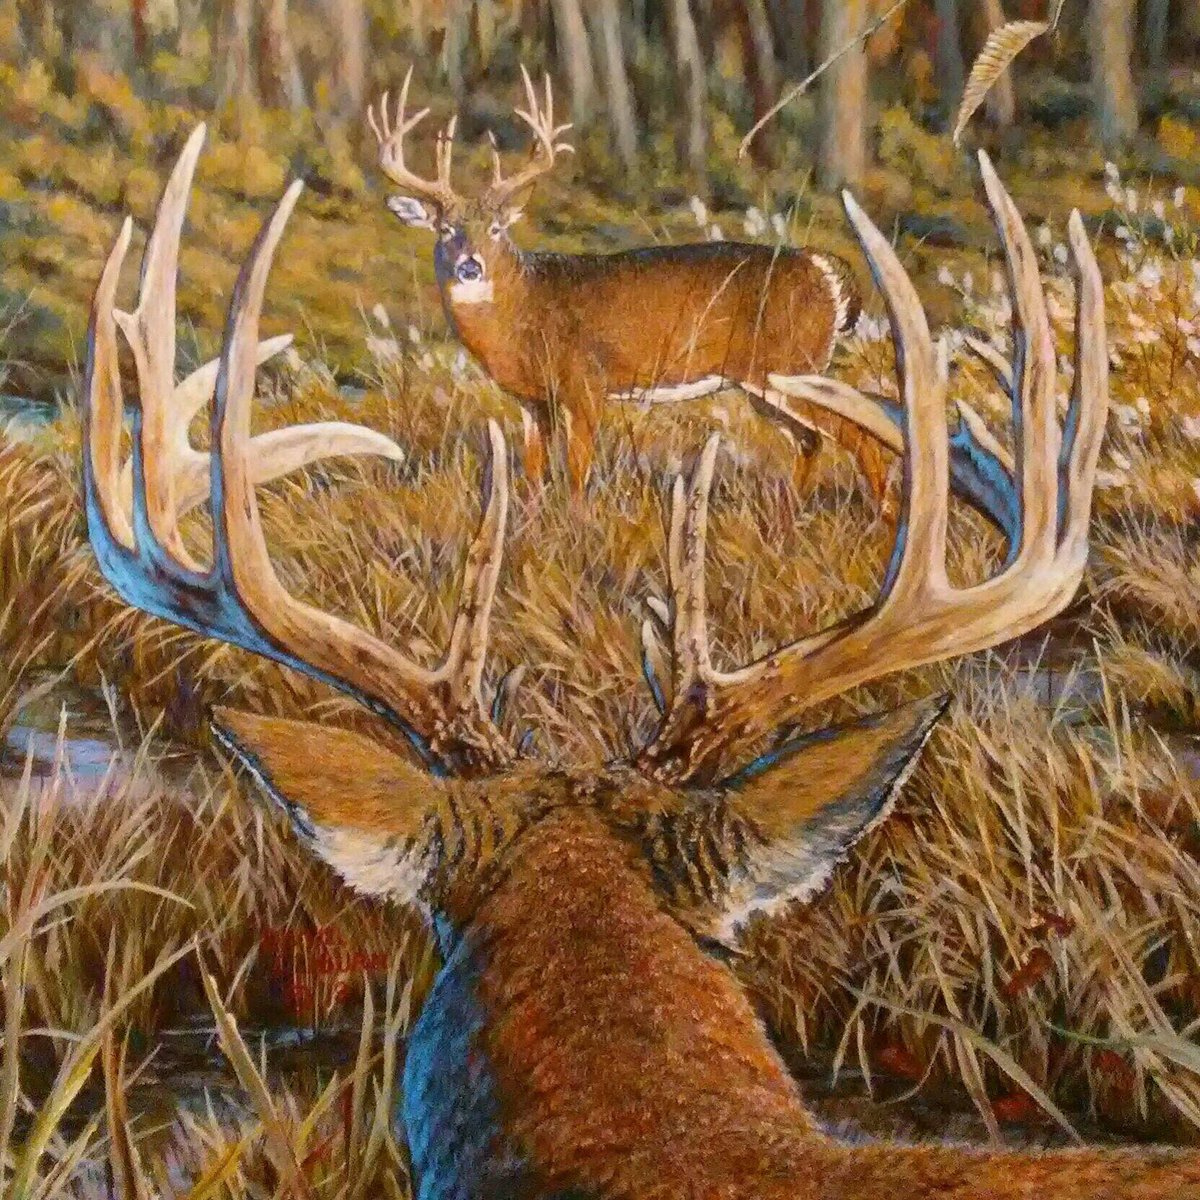 A sneak peek at the painting that is the back of our newest t-shirt. This is an original from wildlife artist, Daniel Cliburn. Available this week at Buckarama, in Perry, GA. #N1outdoors #Buckarama<br>http://pic.twitter.com/fC6785PnwN